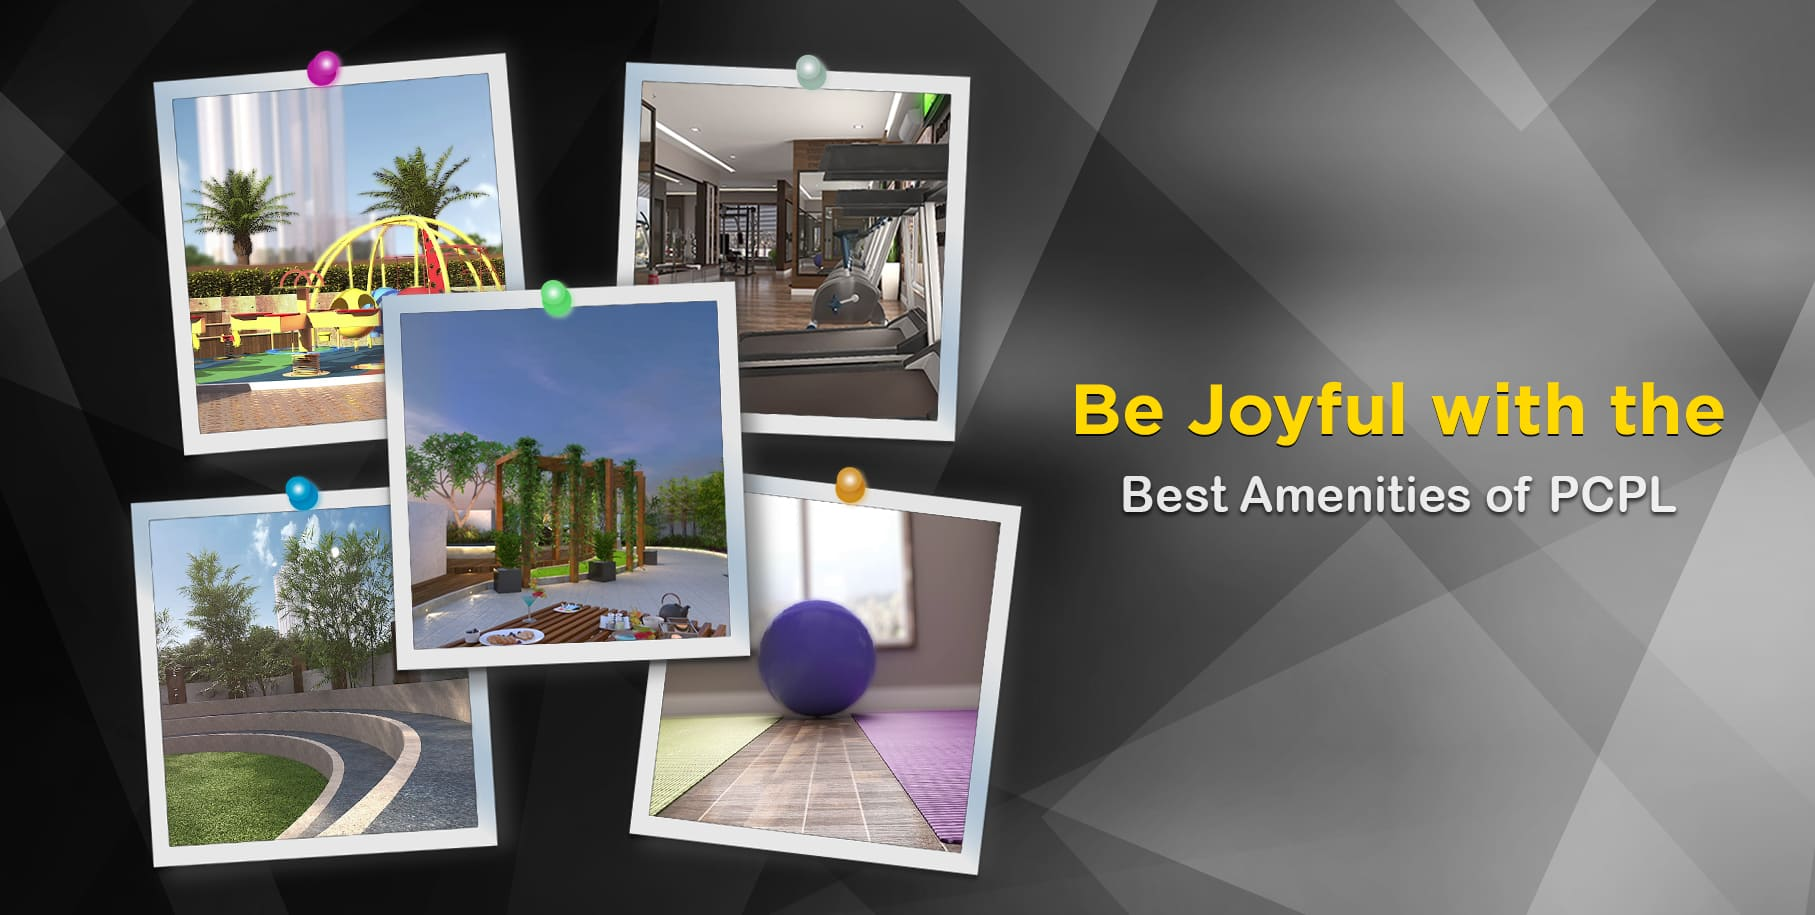 Be Joyful With the Best Amenities of PCPL